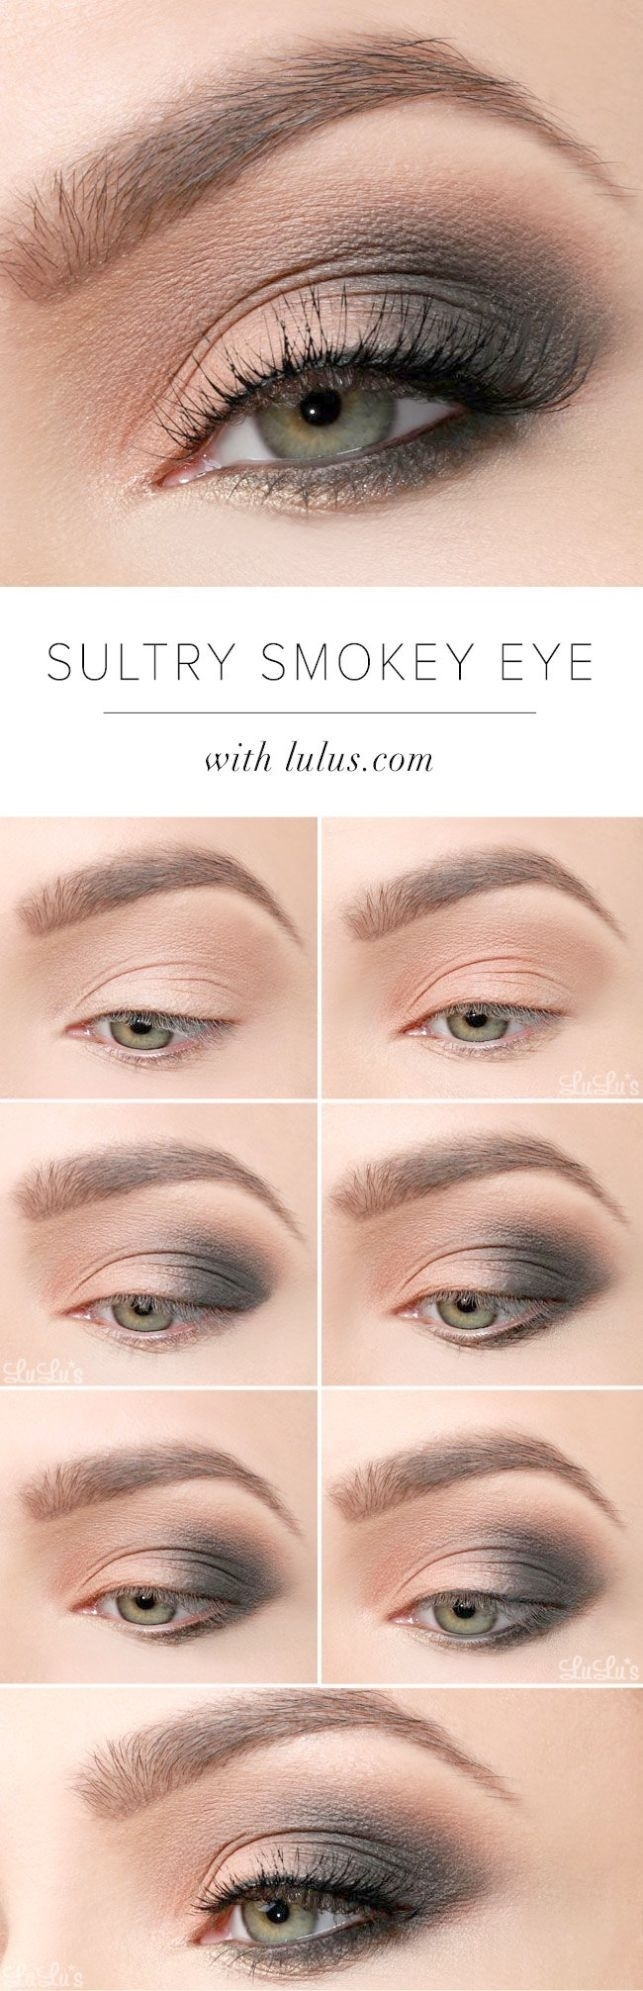 how to apply eye makeup for blue eyes over 50 - wavy haircut